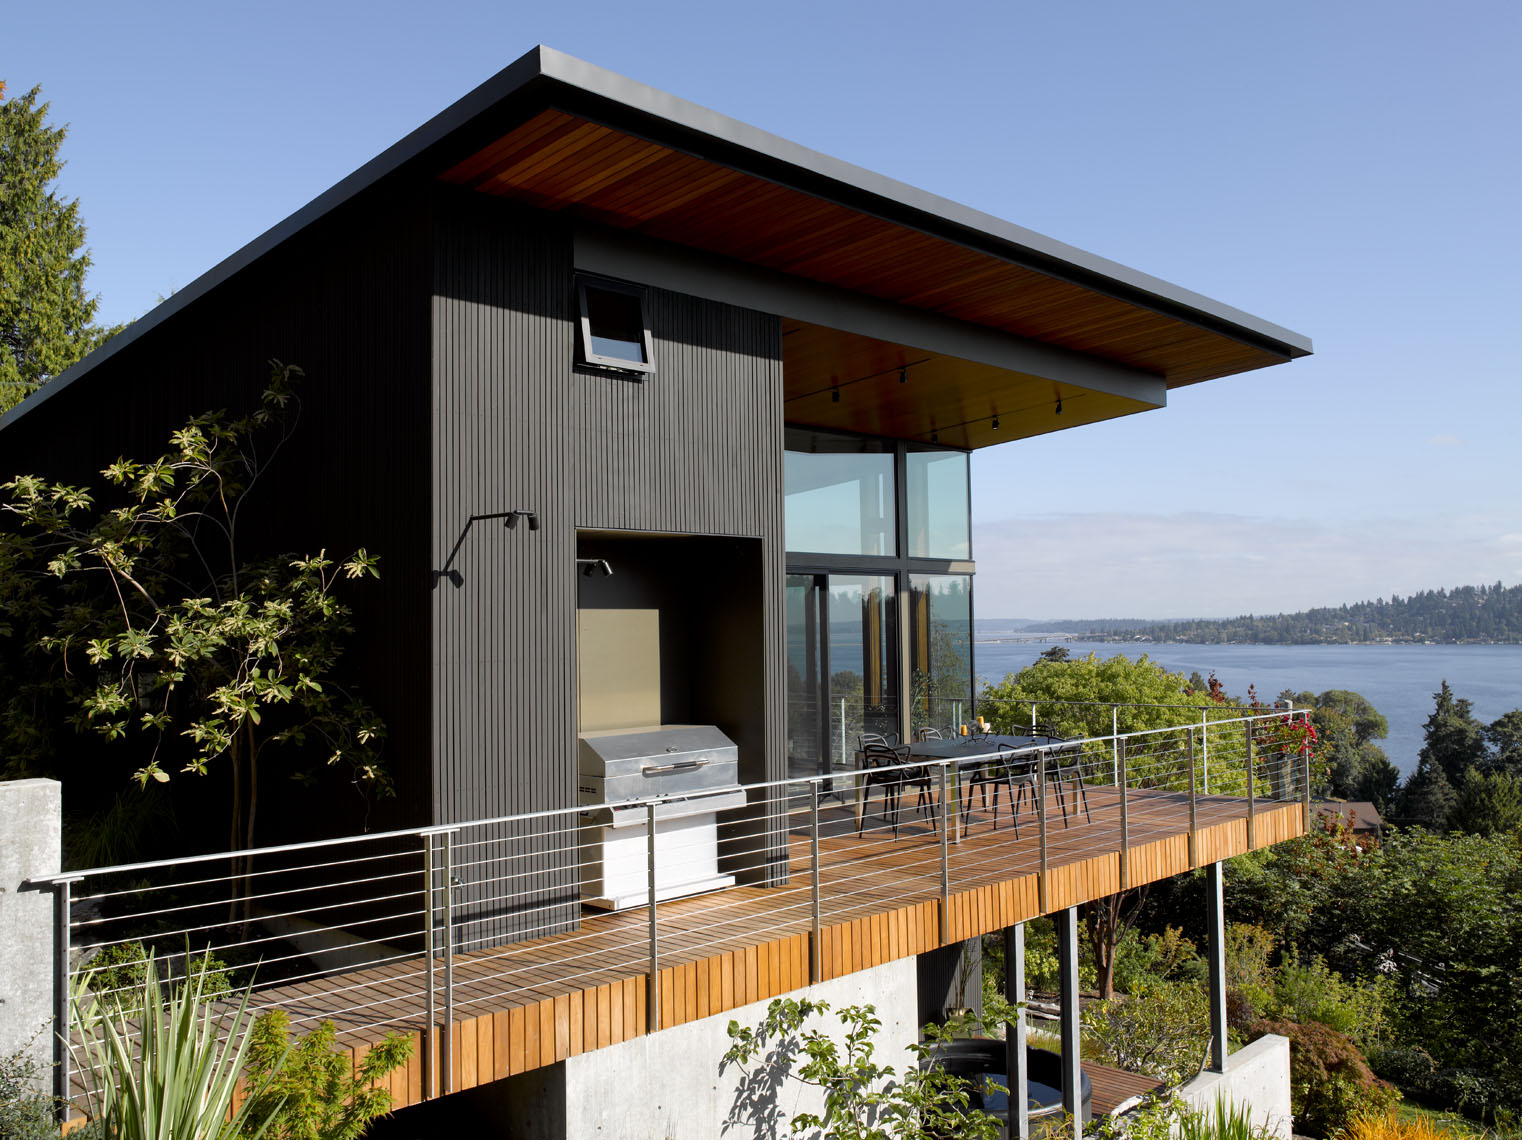 seattle-exterior-architecture-photographer